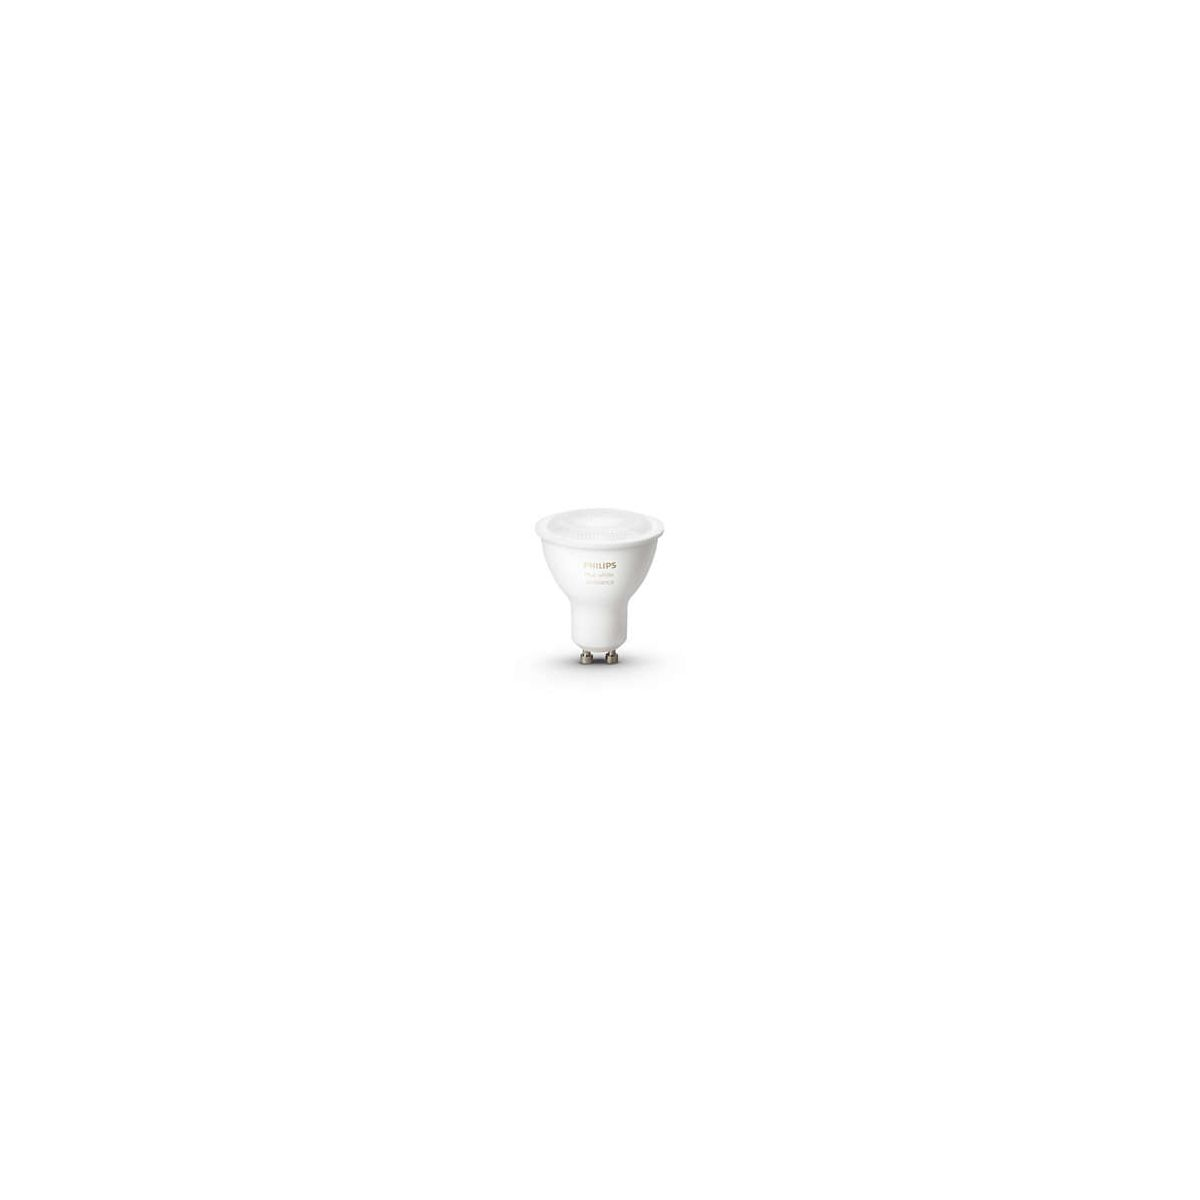 Ampoule connectable PHILIPS 5.5W GU10 EU Hue White & Ambia...